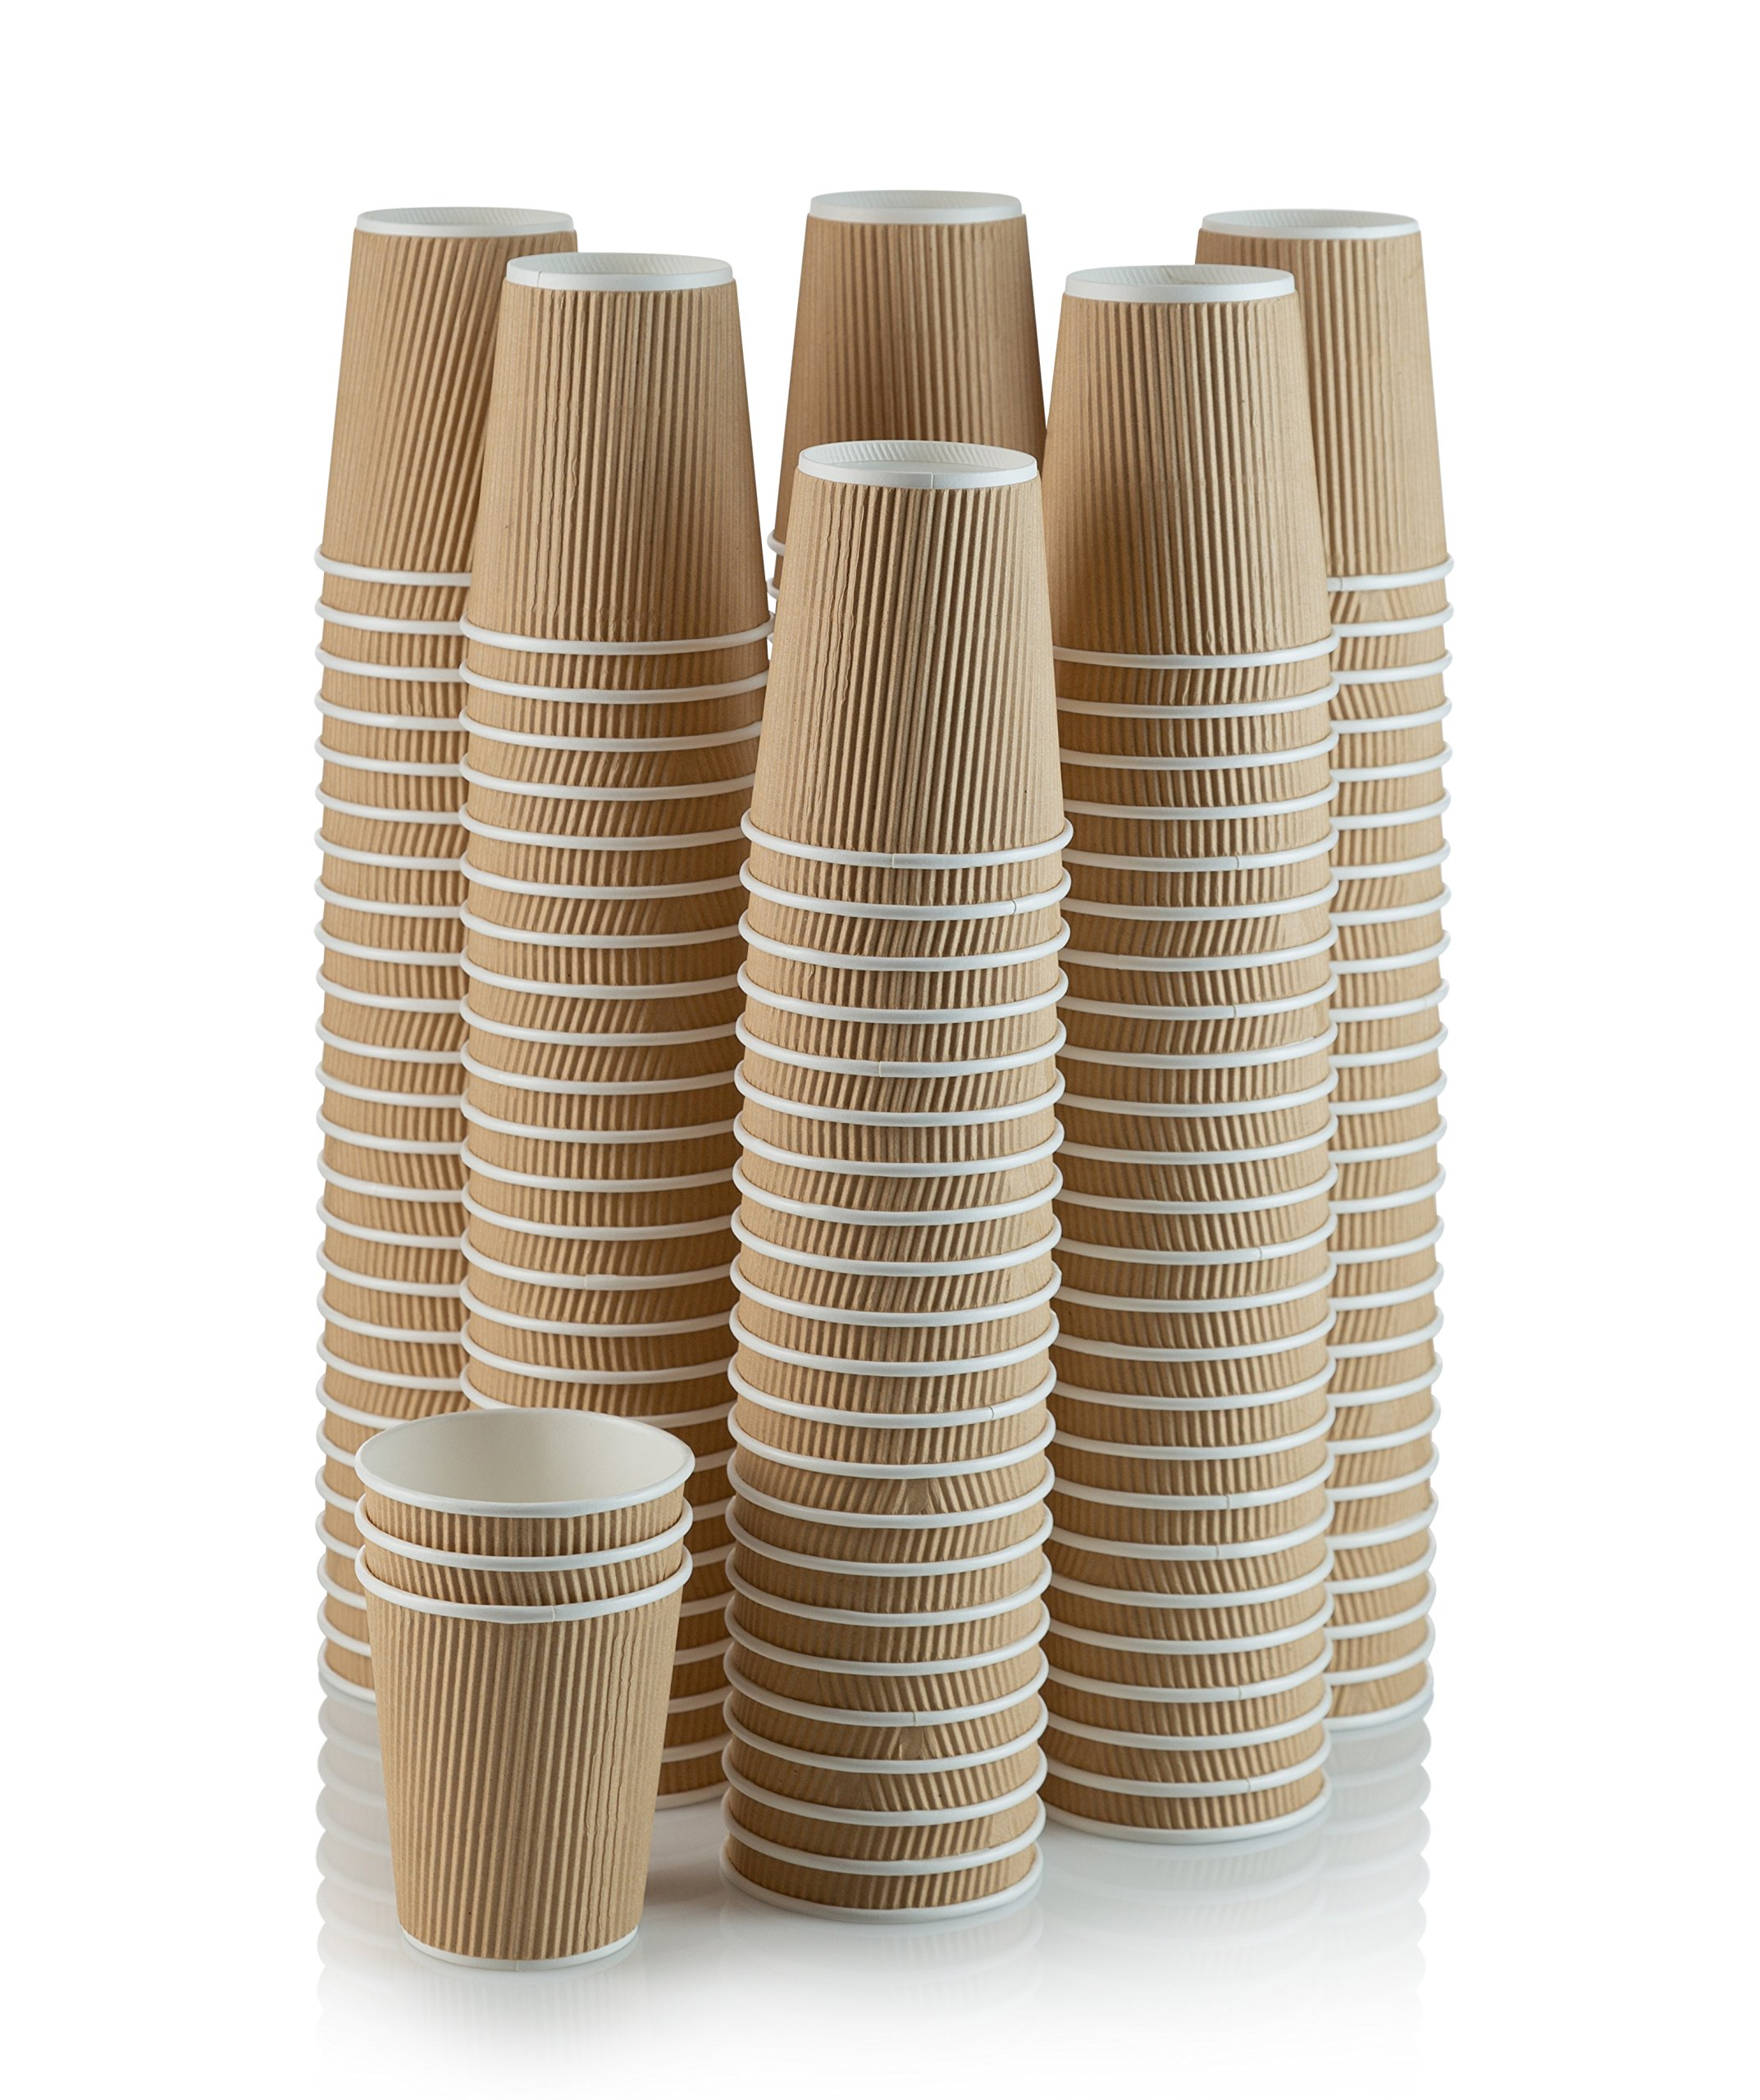 Set of 150 Ripple Insulated Kraft 8-oz Paper Cups - Coffee/Tea Hot Cups |3-Layer Rippled Wall For Better Insulation | Perfect for Cappuccino, Hot Cocoa, or Iced Drinks by NYHI